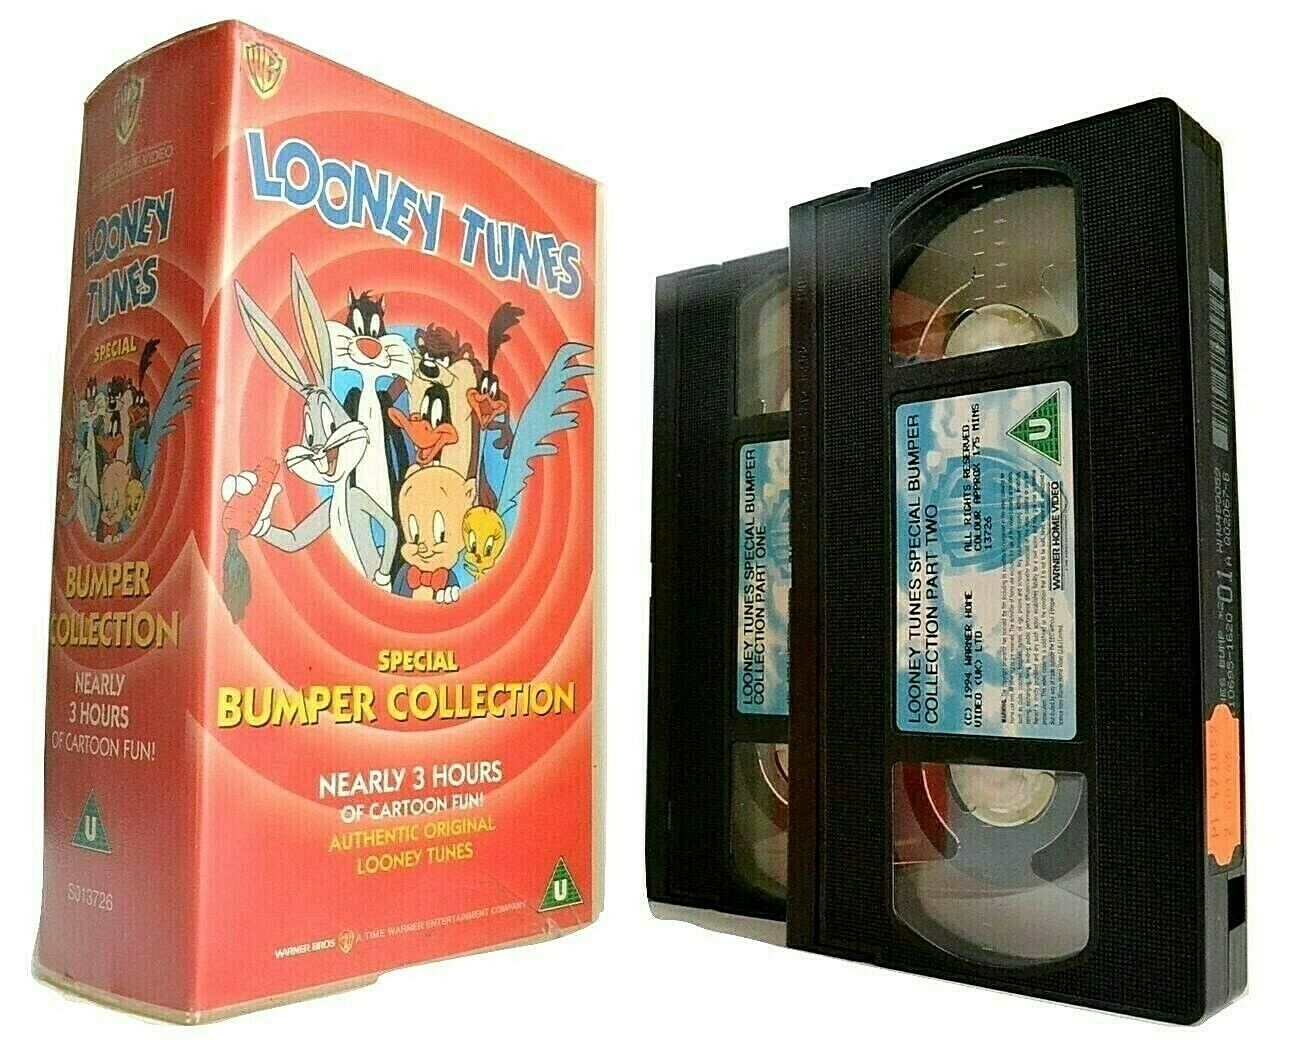 Looney Tunes: Special Bumper Collection - Bugs Bunny - Daffy Duck - Kids - VHS